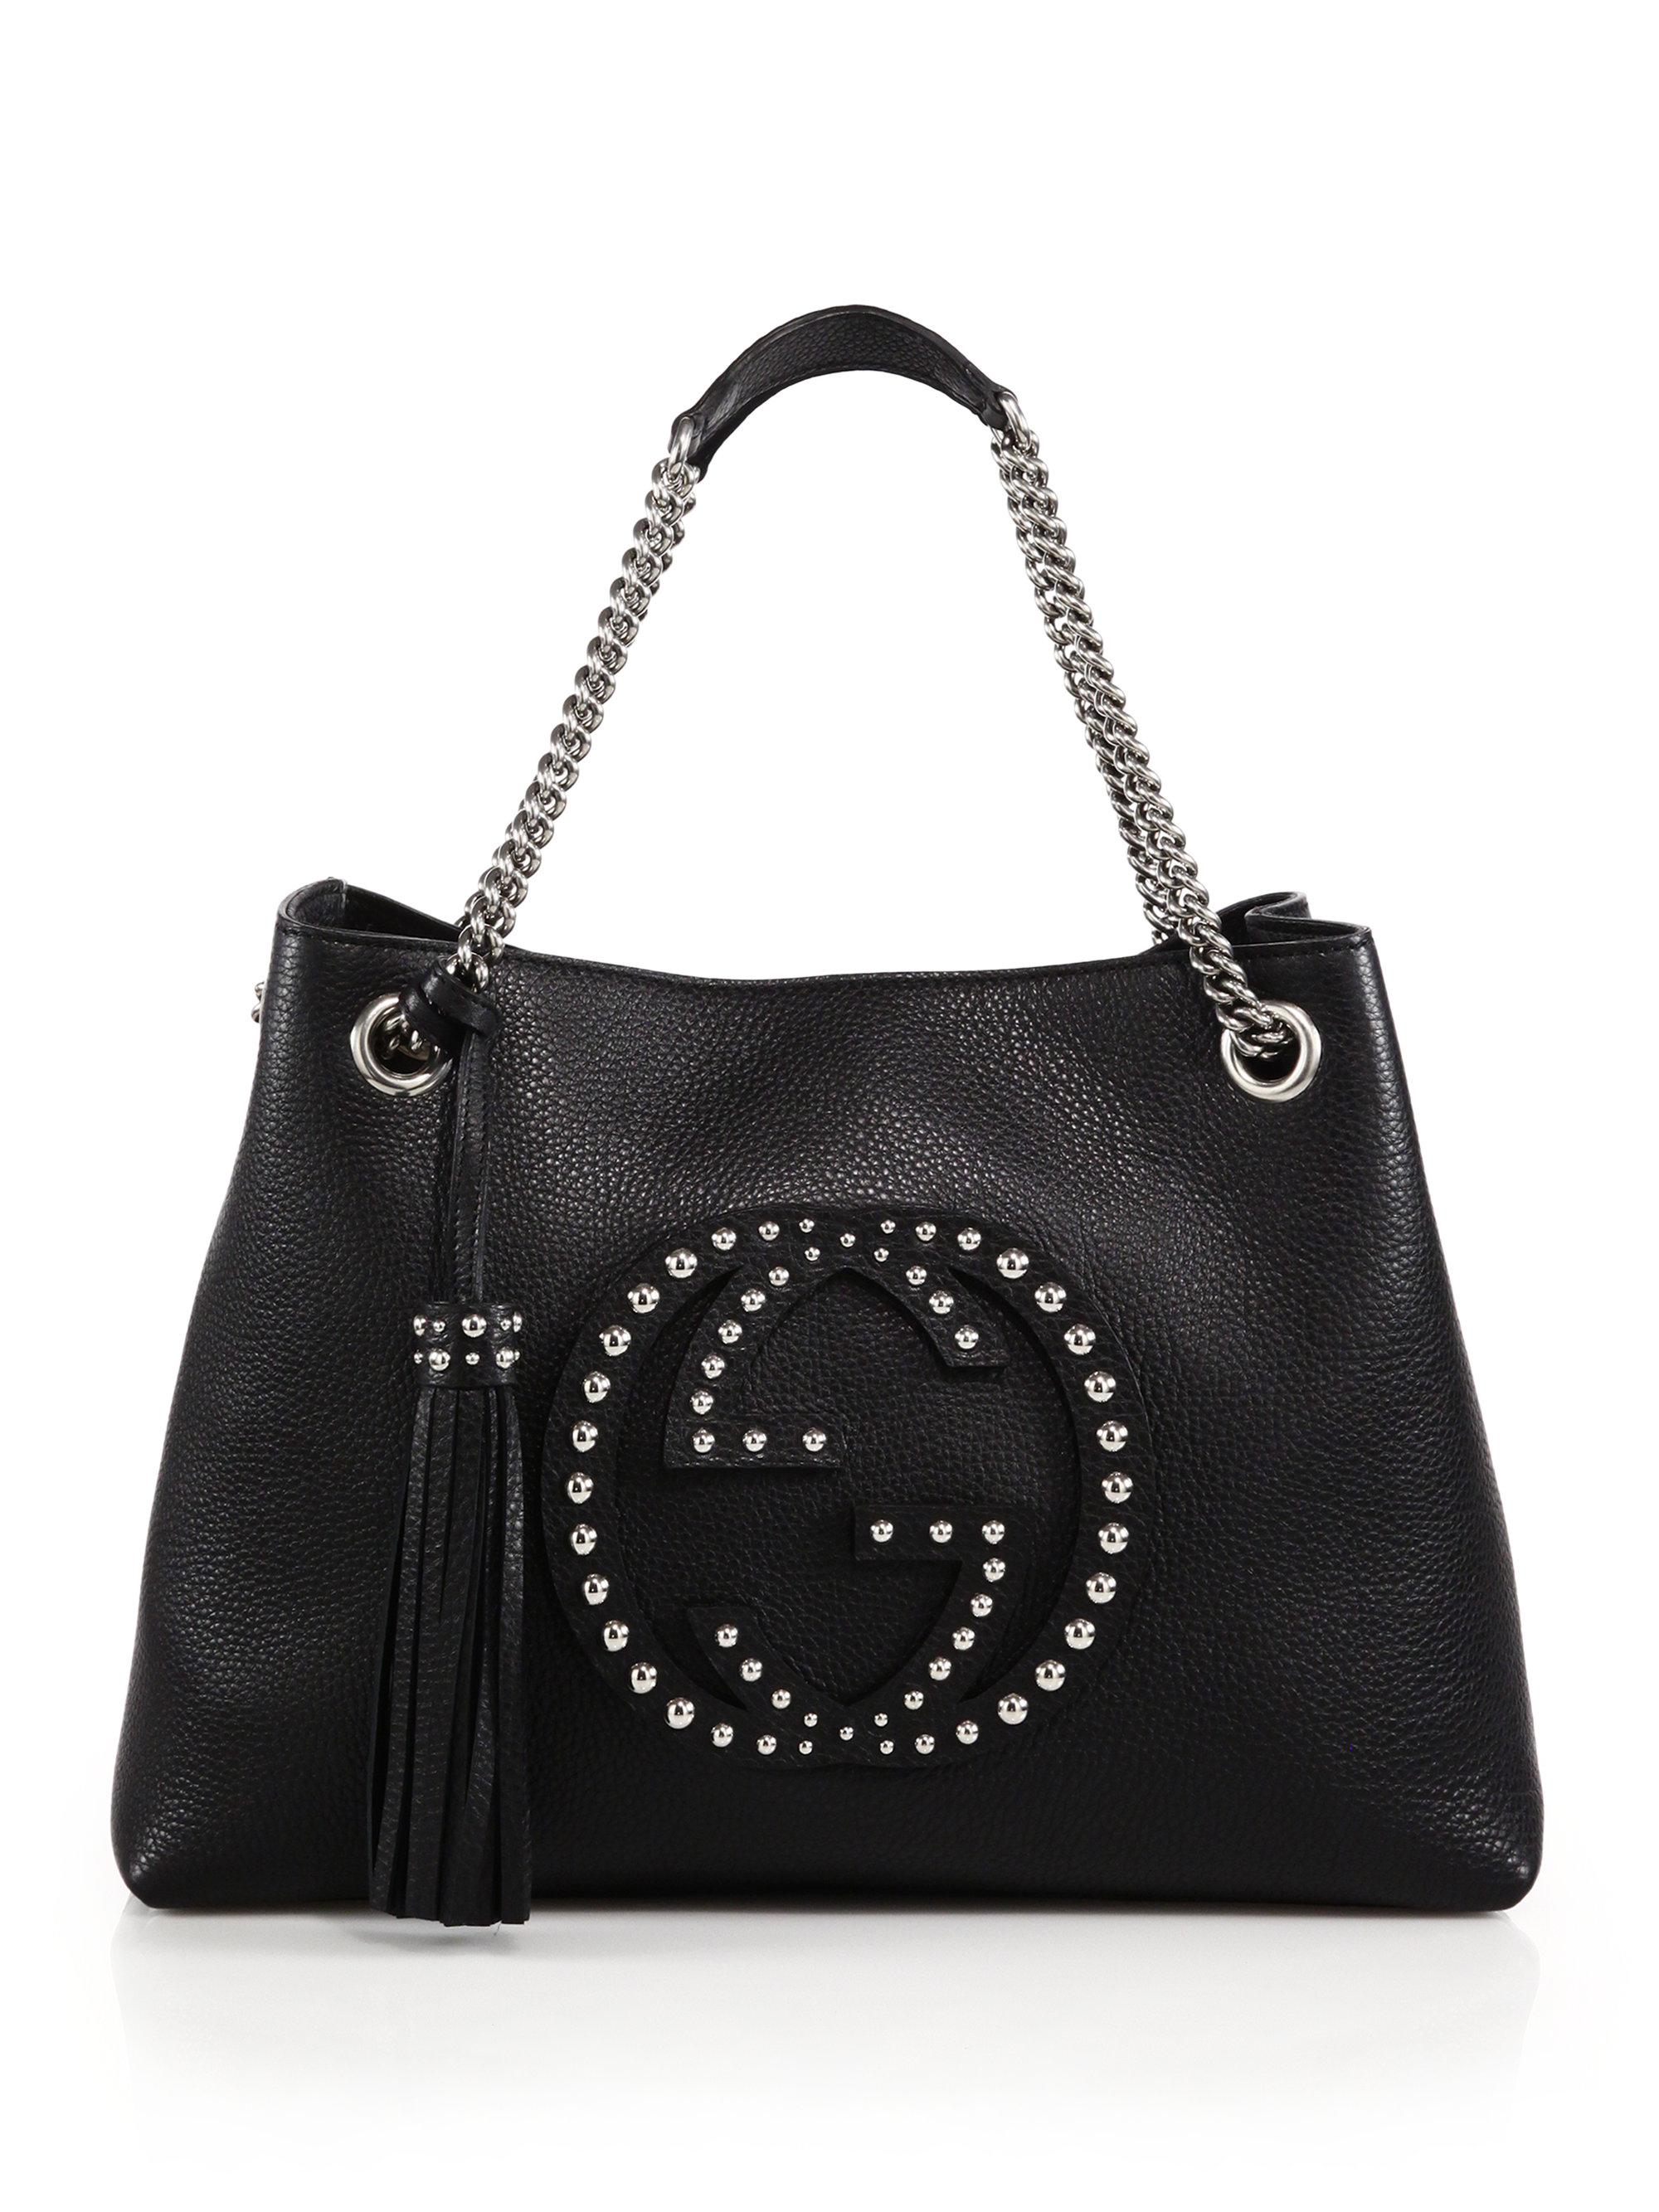 lyst gucci soho medium studded leather chain shoulder bag in black. Black Bedroom Furniture Sets. Home Design Ideas